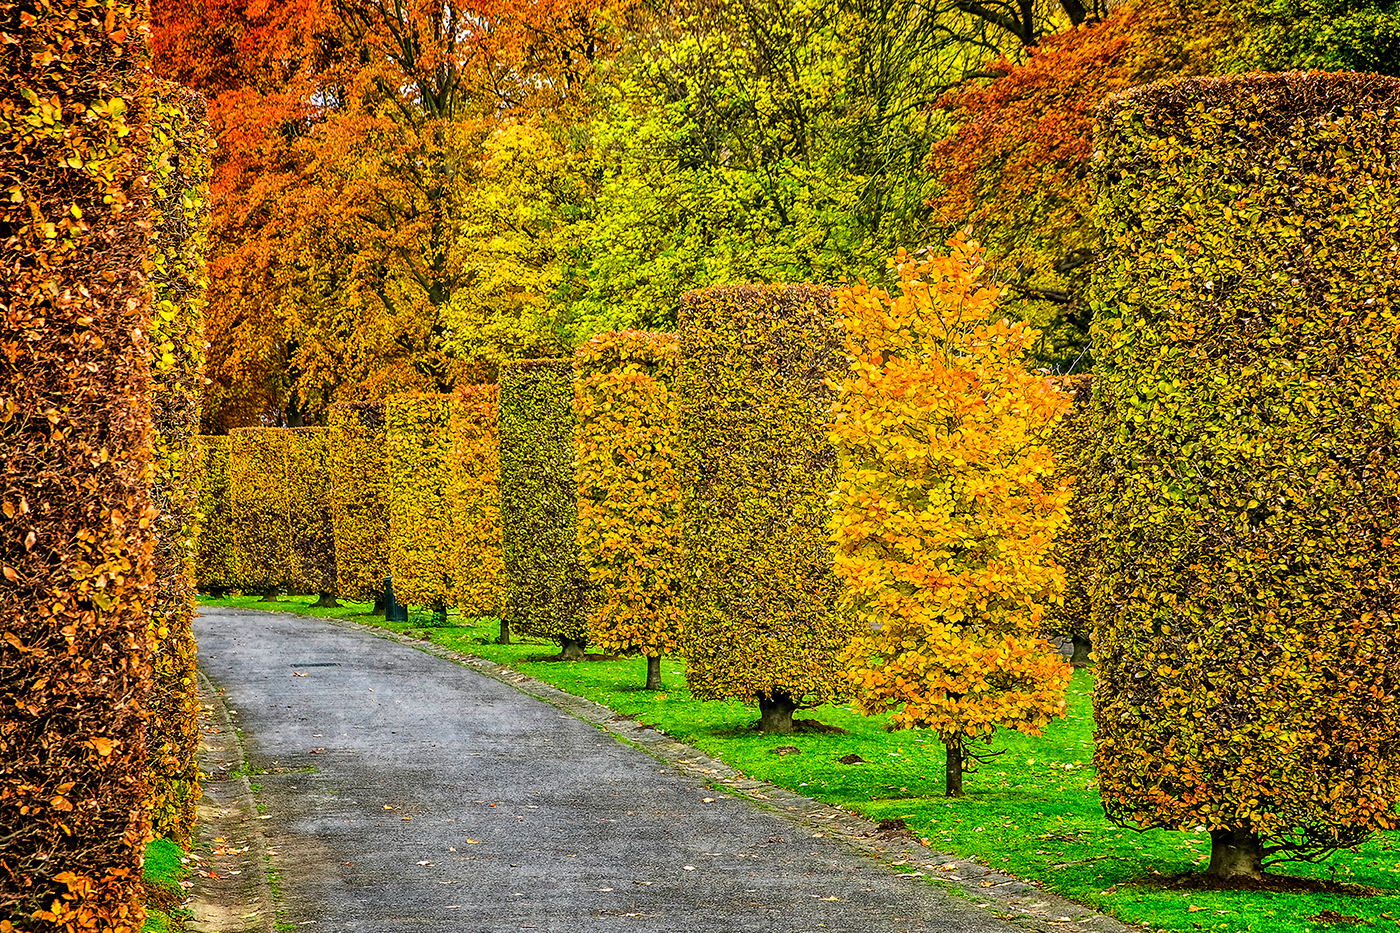 belgium brussels Park lake autumn yellow red foliage trees leaves